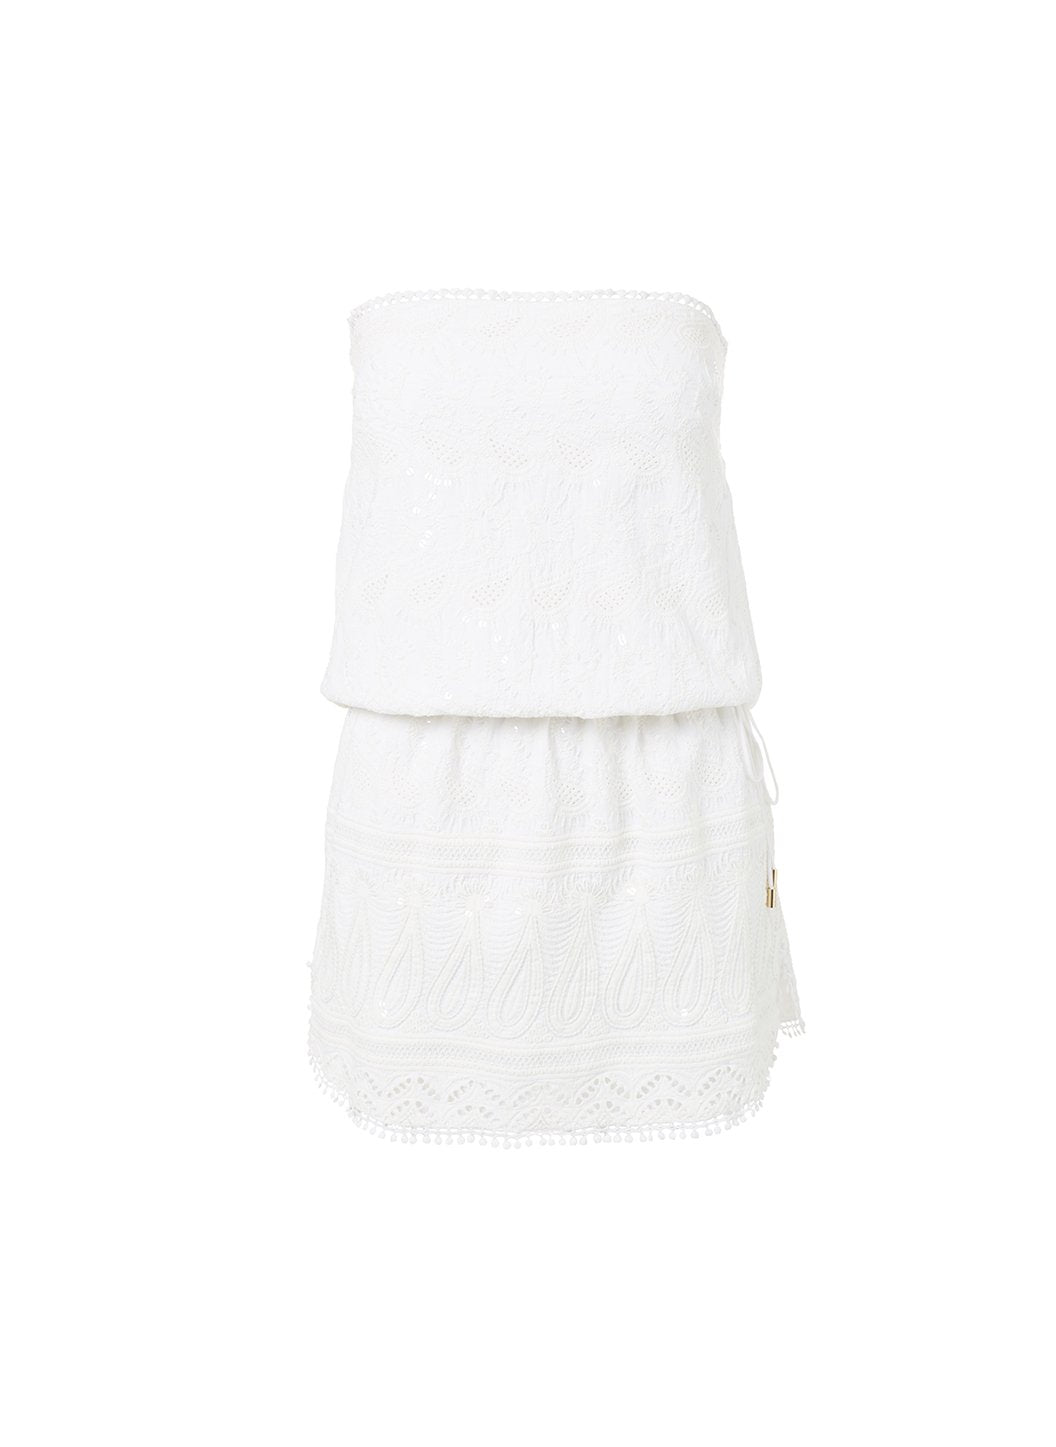 tia white textured short bandeau dress 2019